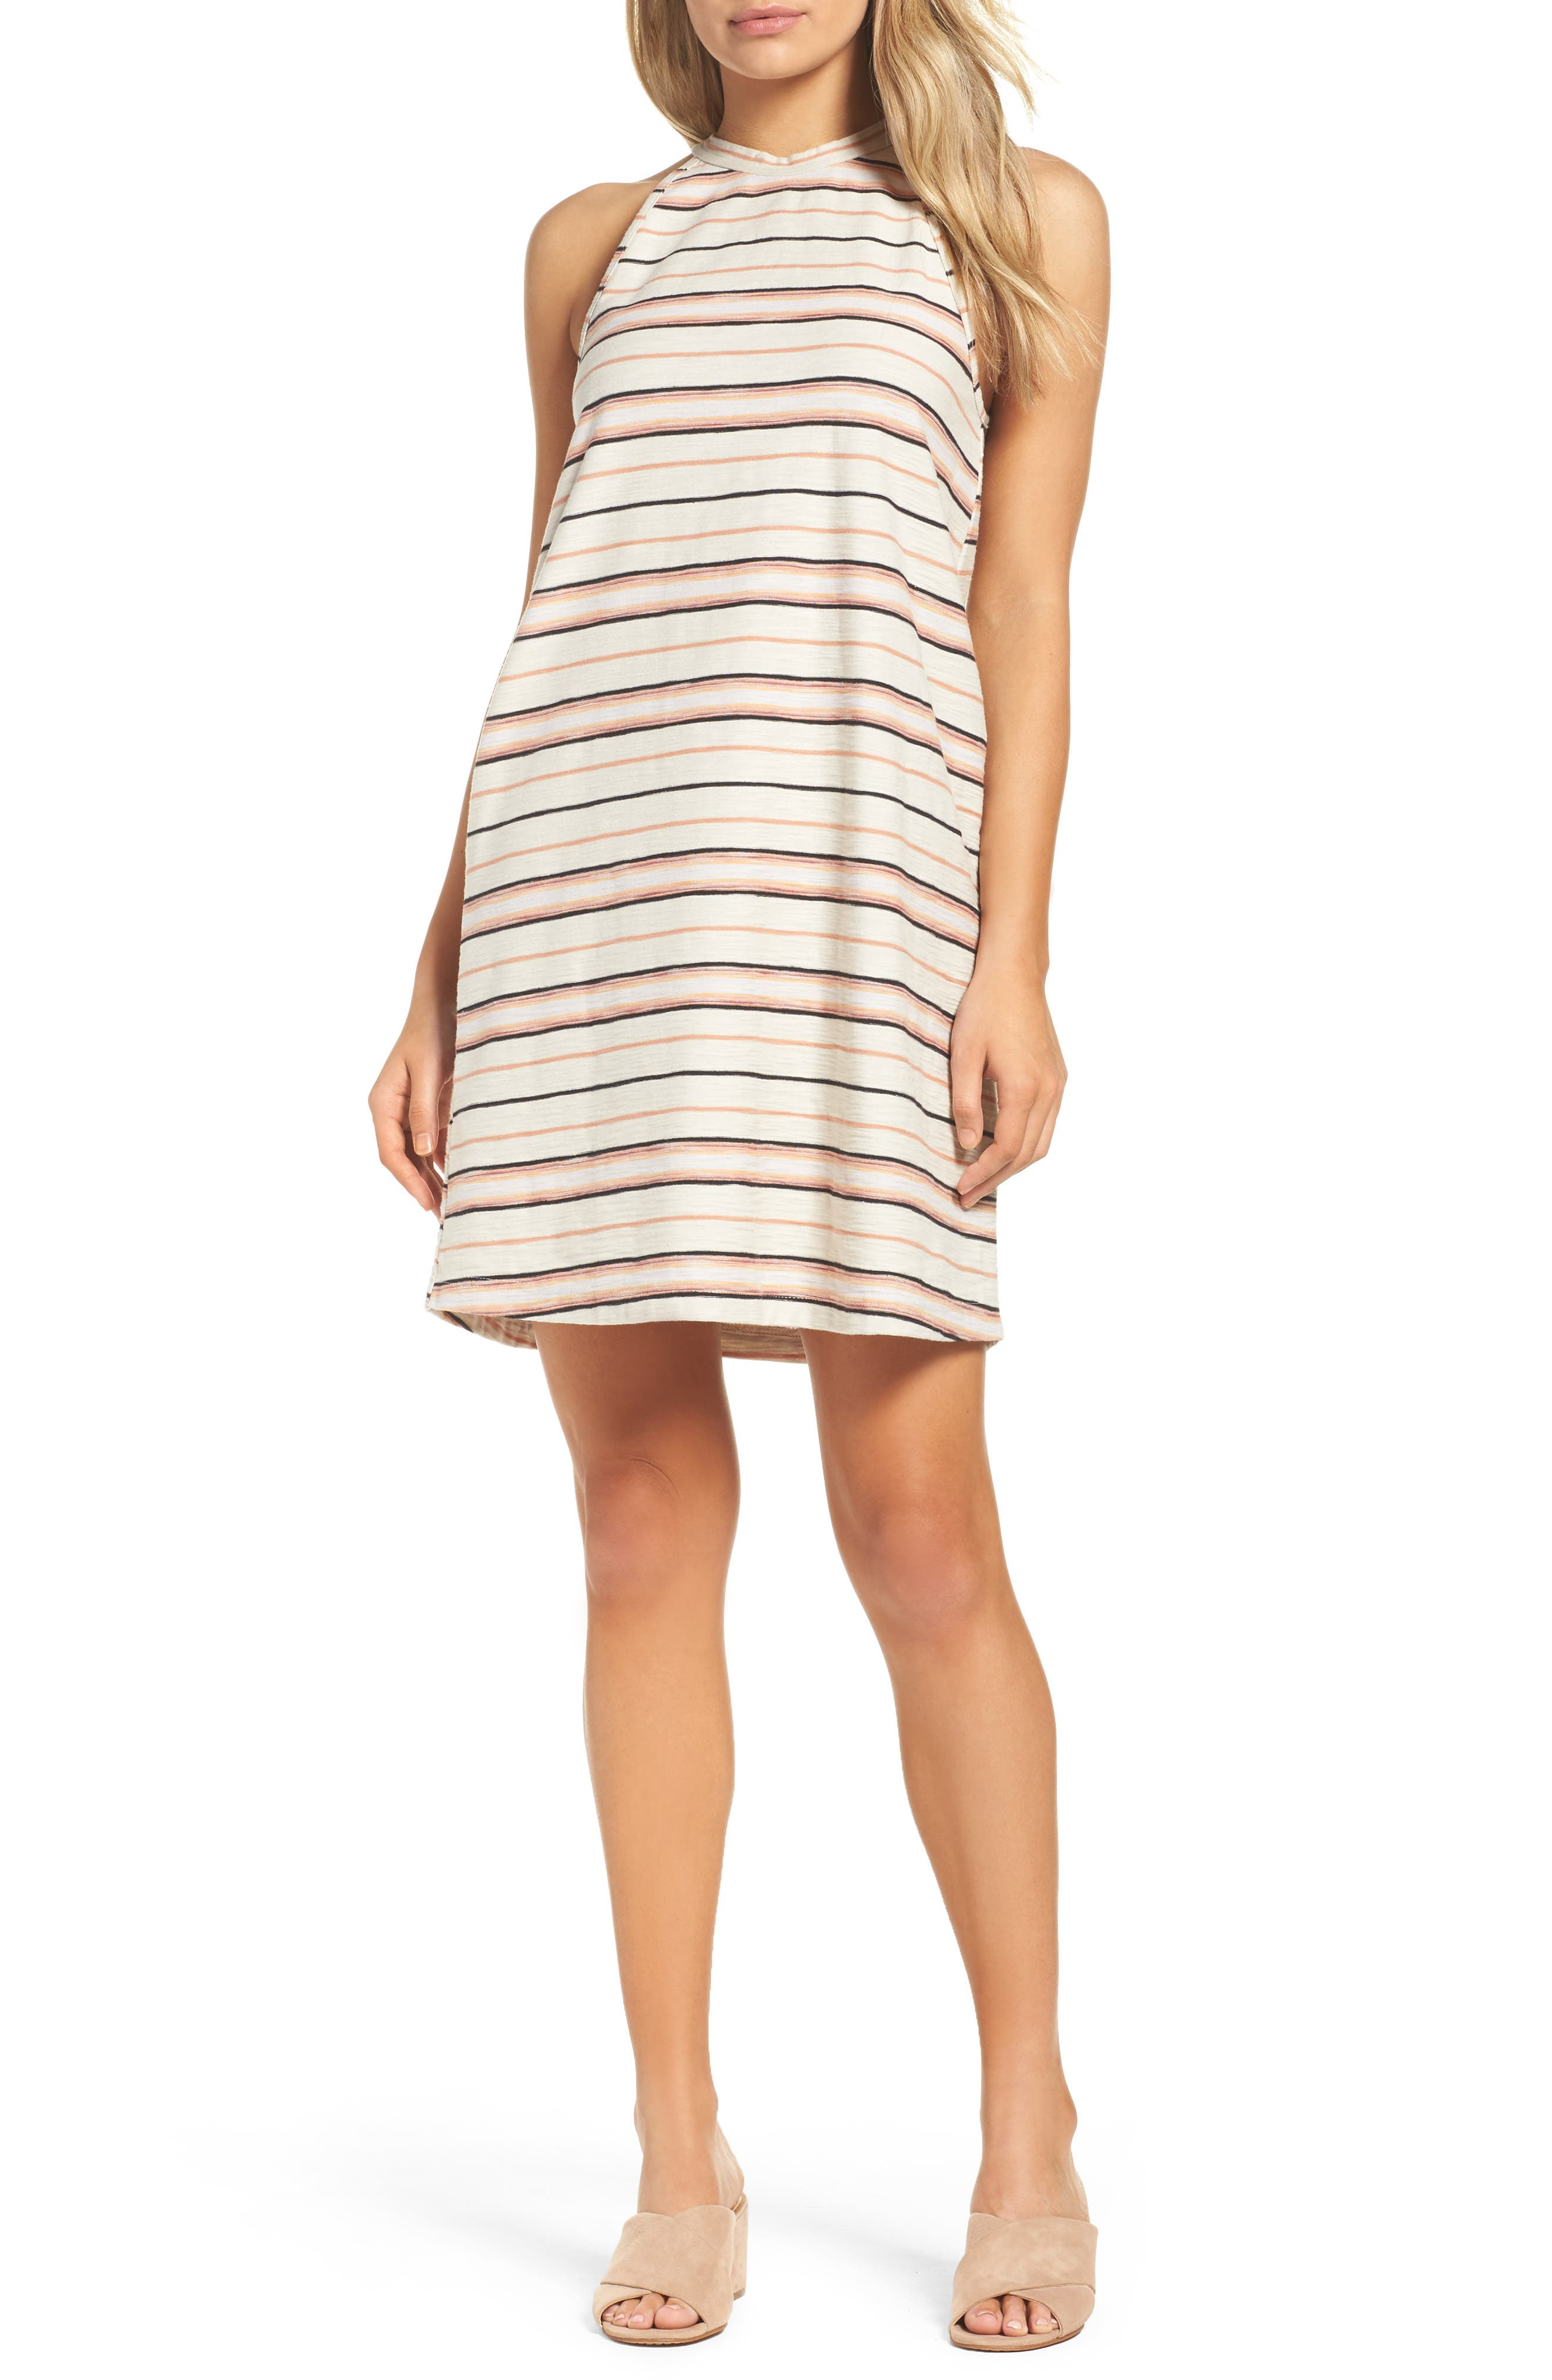 Field Day Stripe Dress,                             Main thumbnail 1, color,